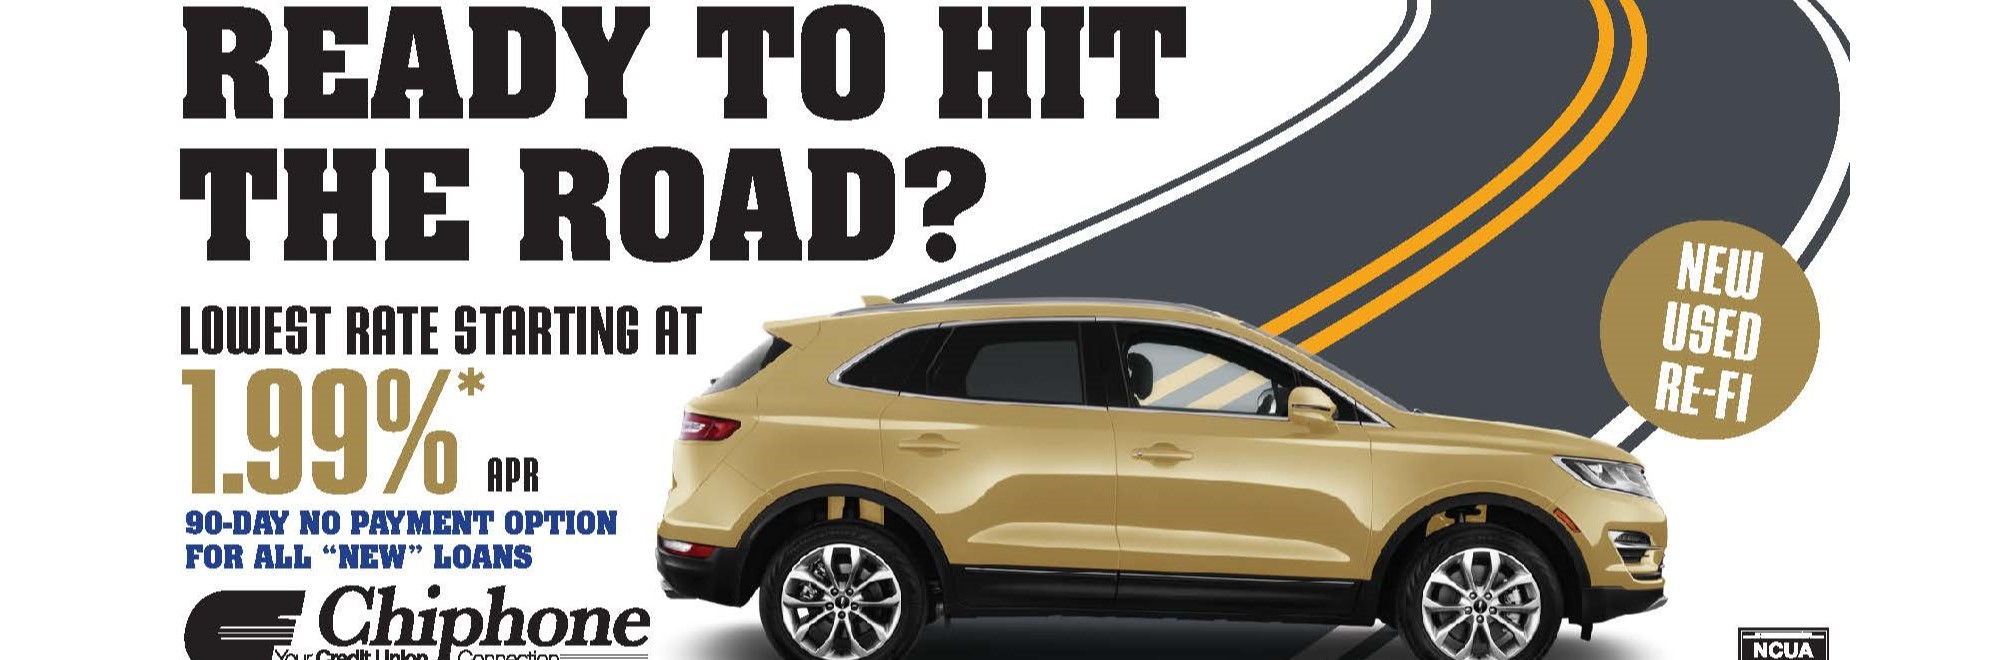 HIT THE ROAD WITH A GREAT RATE ON YOUR NEXT AUTO LOAN!